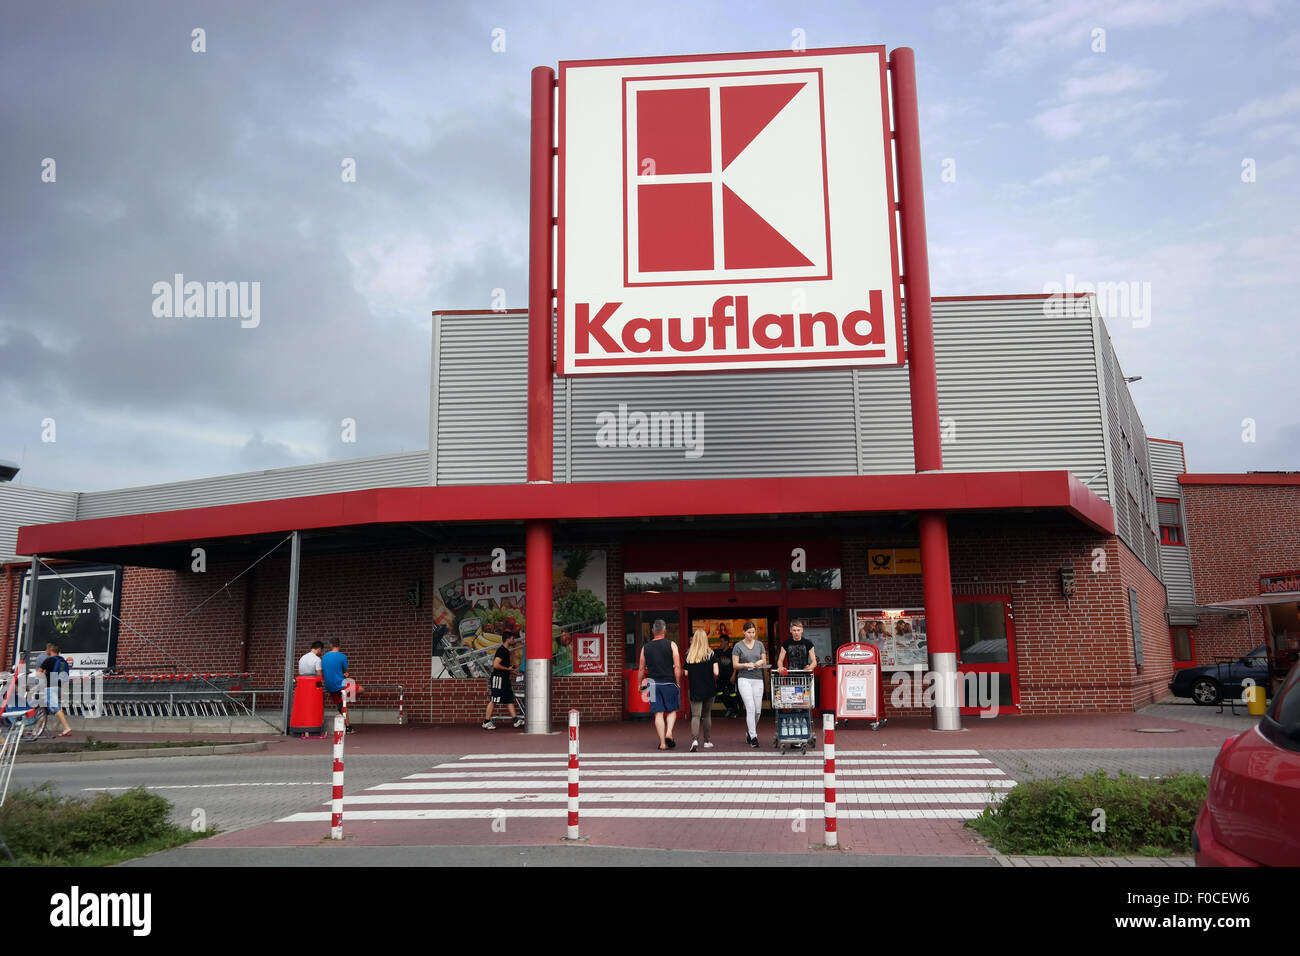 Entry of a Kaufland Hypermarket, a German discount retail chain. - Stock Image